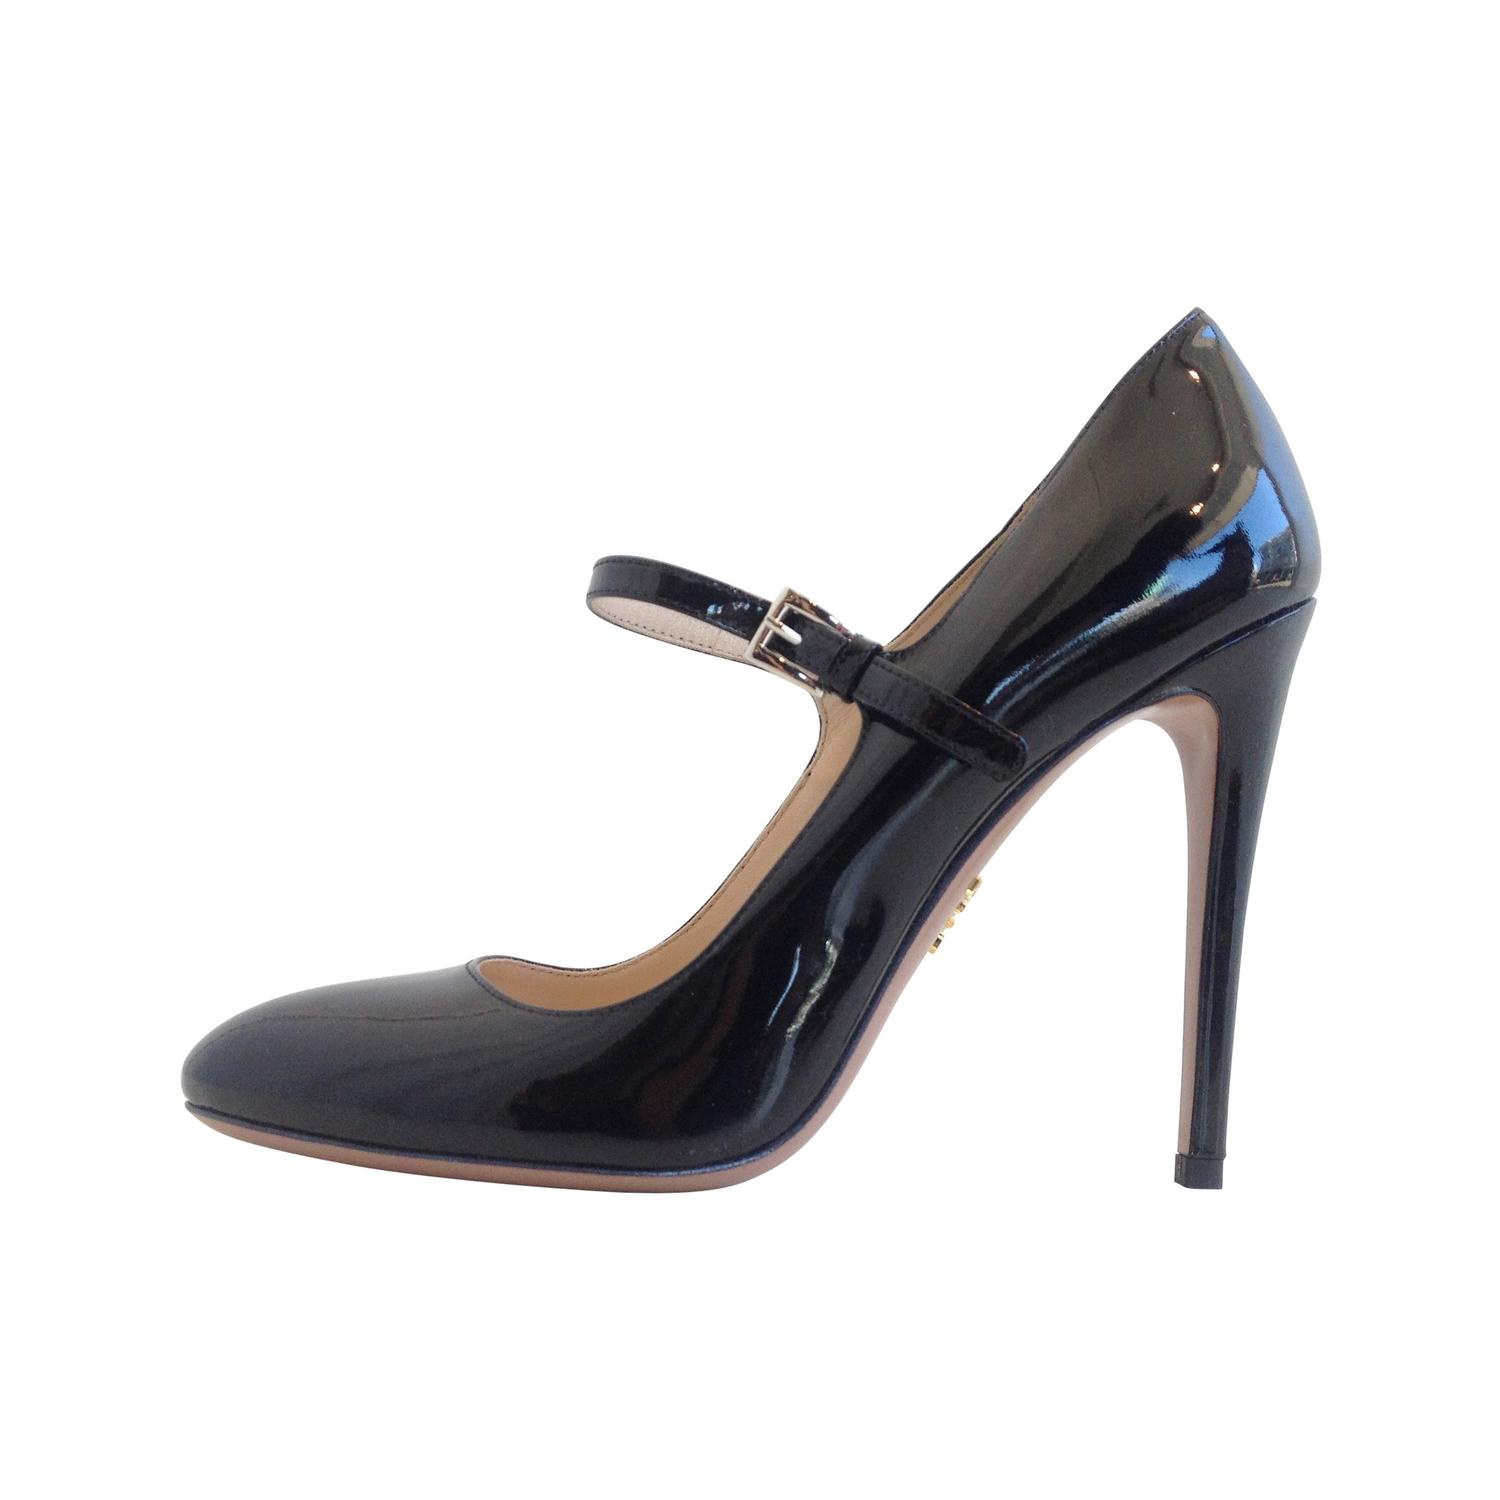 prada black patent mary jane heels at 1stdibs. Black Bedroom Furniture Sets. Home Design Ideas